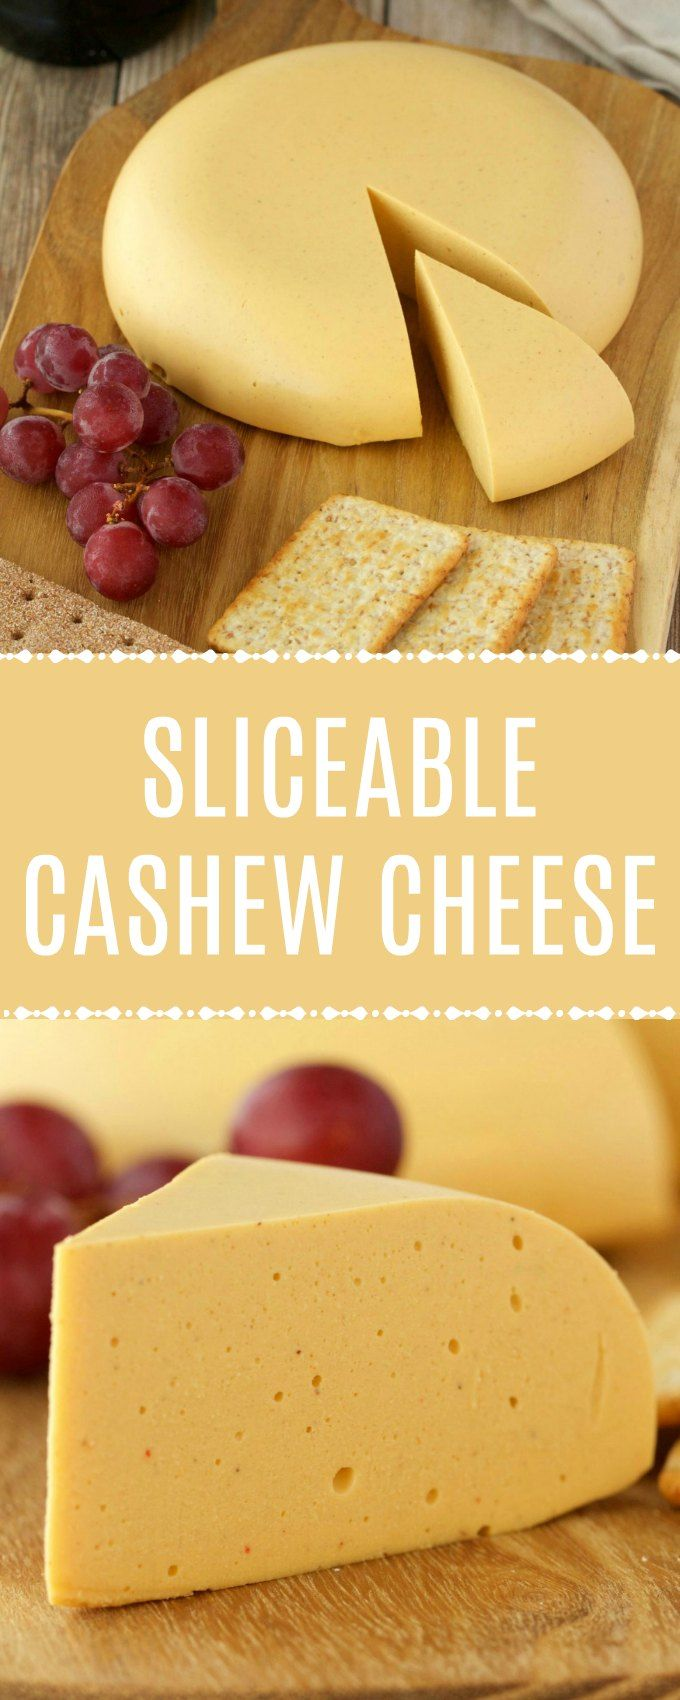 Vegan cashew cheese that is sliceable and perfect for a vegan cheese board! It's delicious on crackers and you can slice it into perfect slices and you can mash it up on a cracker if you like. Full flavored, authentic looking and quick and easy to make too! #vegan #lovingitvegan #vegancheese #cashewcheese #dairyfree #glutenfree | lovingitvegan.com